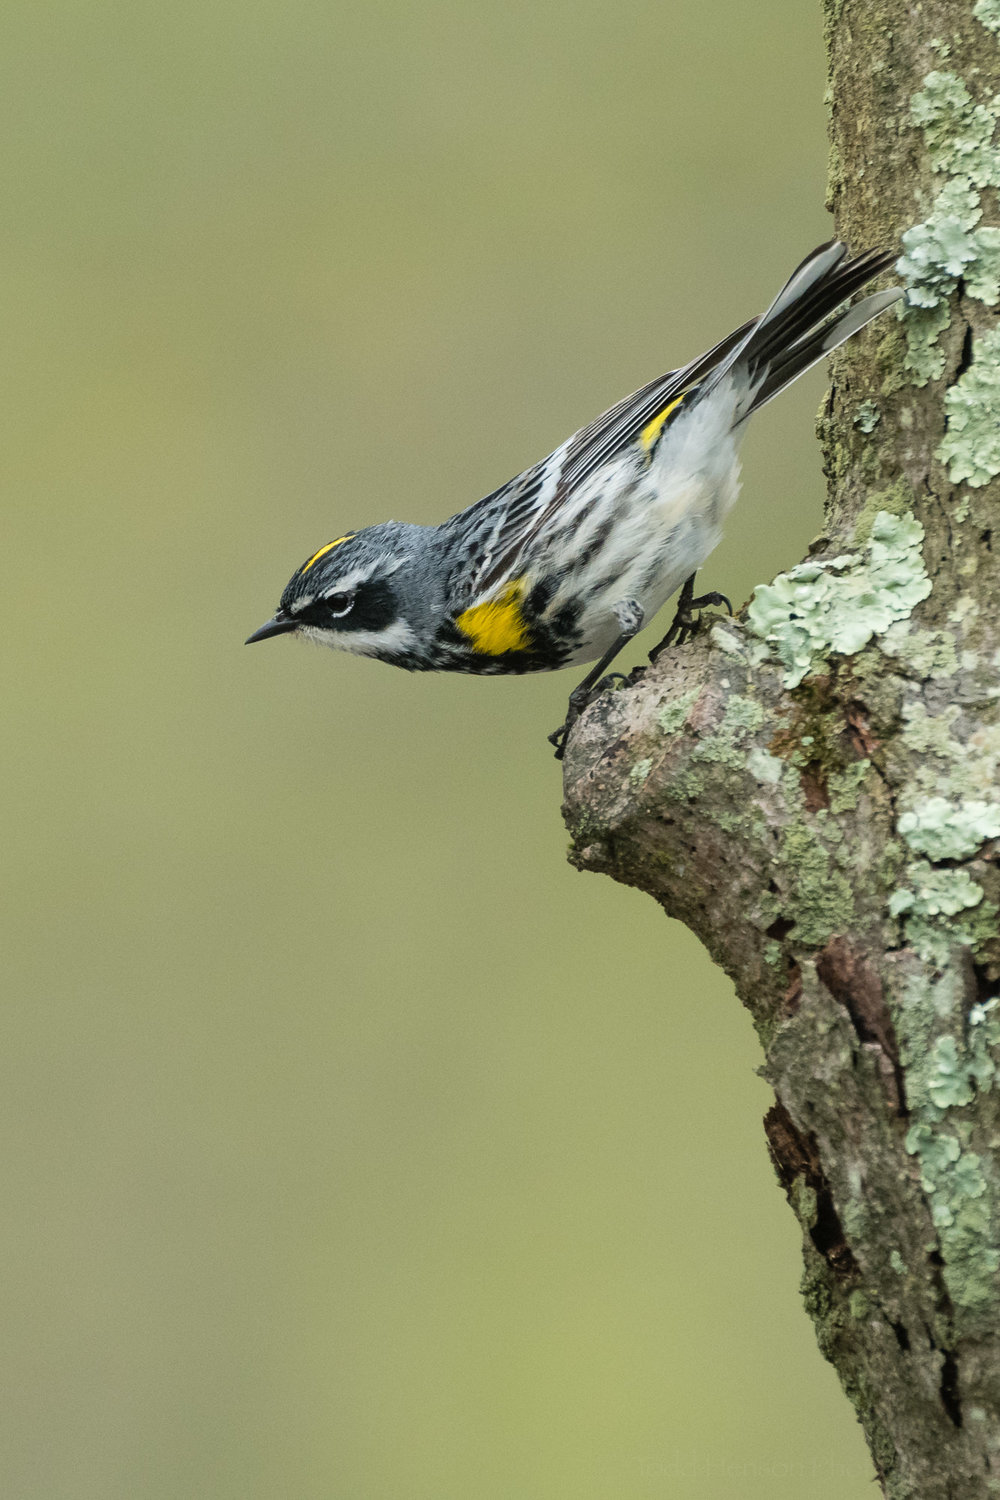 Yellow-rumped (Myrtle) Warbler perched on a tree, getting ready to fly.